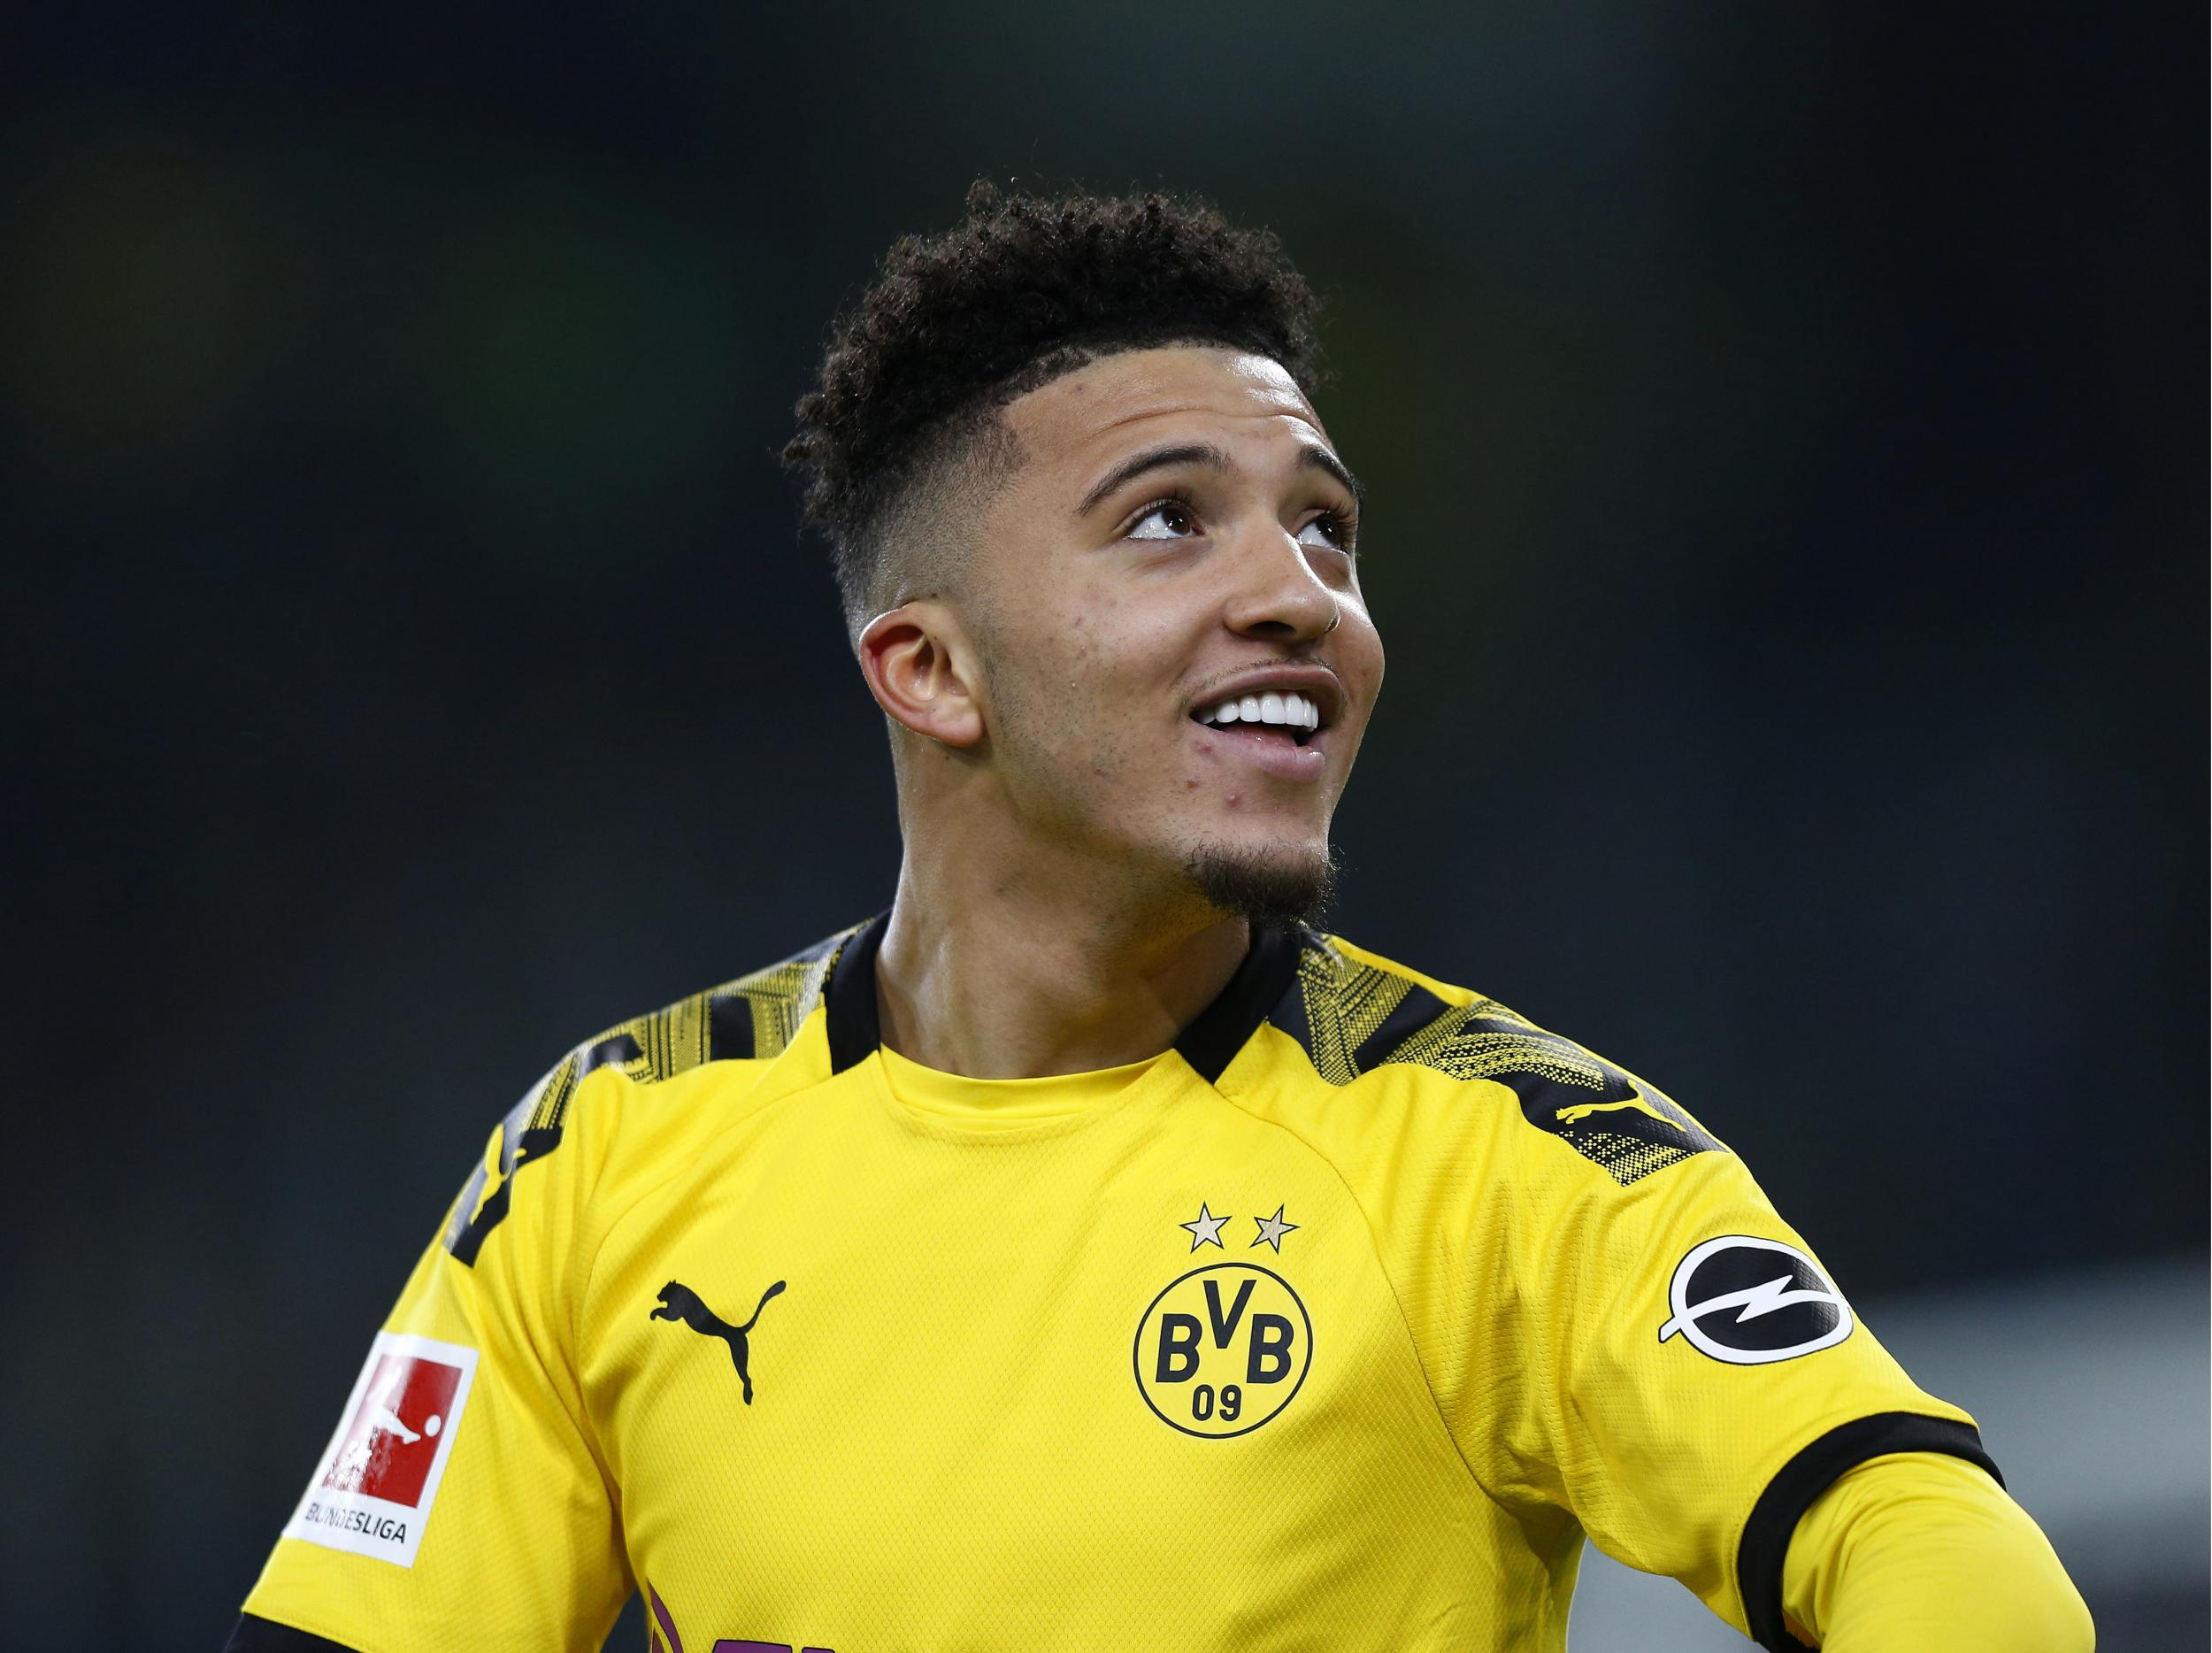 Transfer news LIVE: Liverpool make contact for £41m Ozak Kabak, Man United doubts over Jadon Sancho fee, Chelsea near Kai Havertz agreement thumbnail